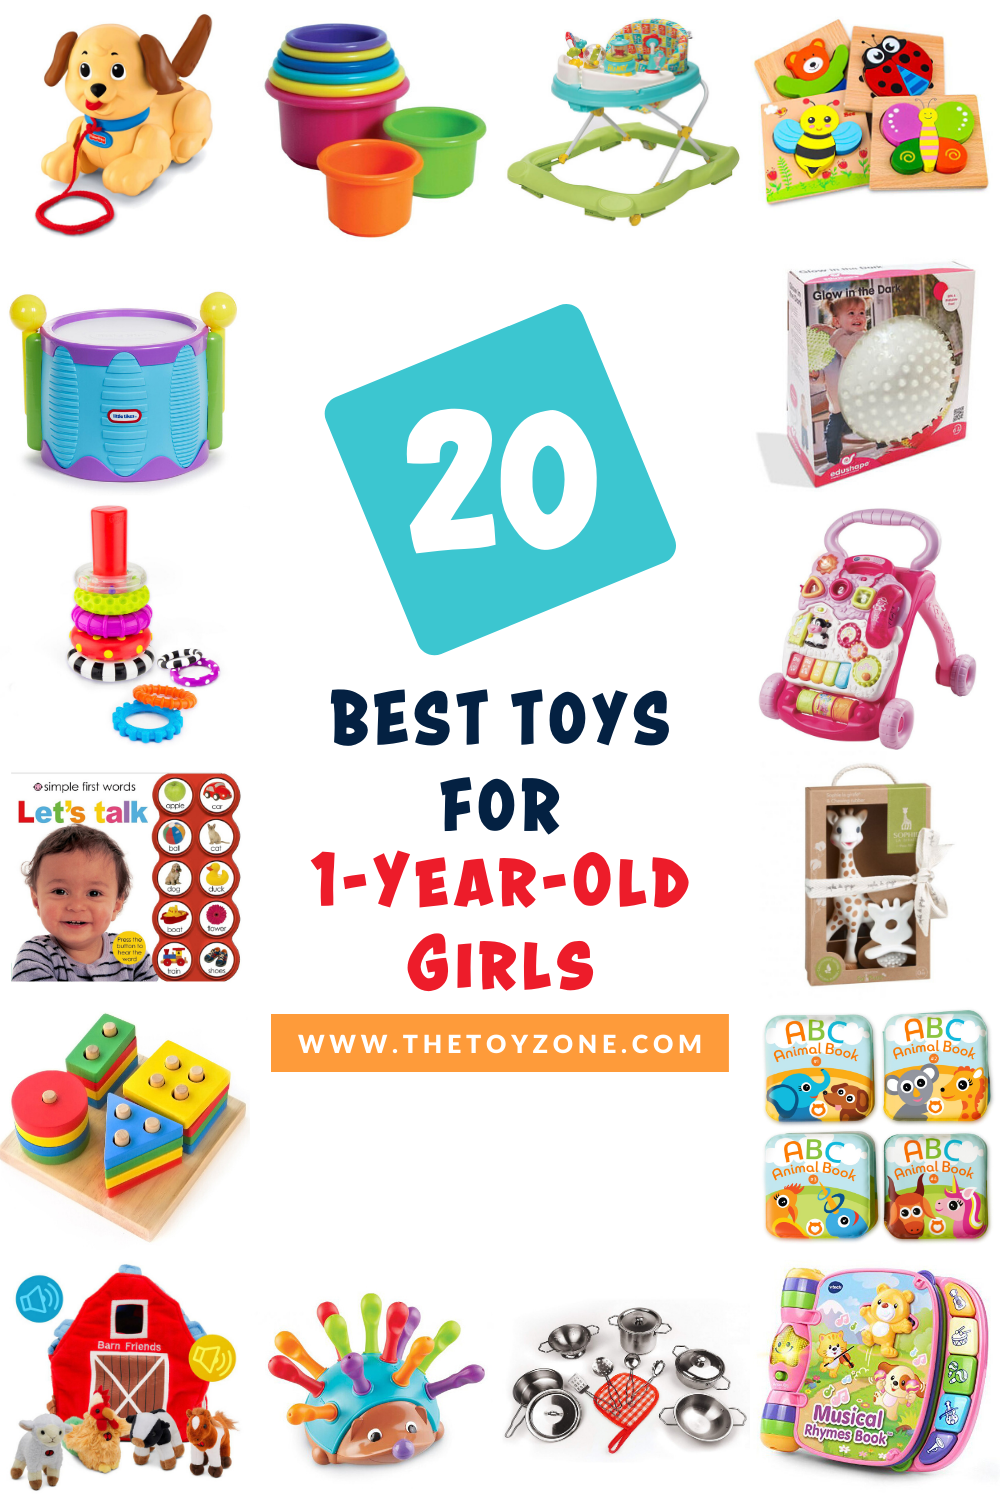 20 Best Toys for 1-Year-Old Girls in 2020 - TheToyZone in ...